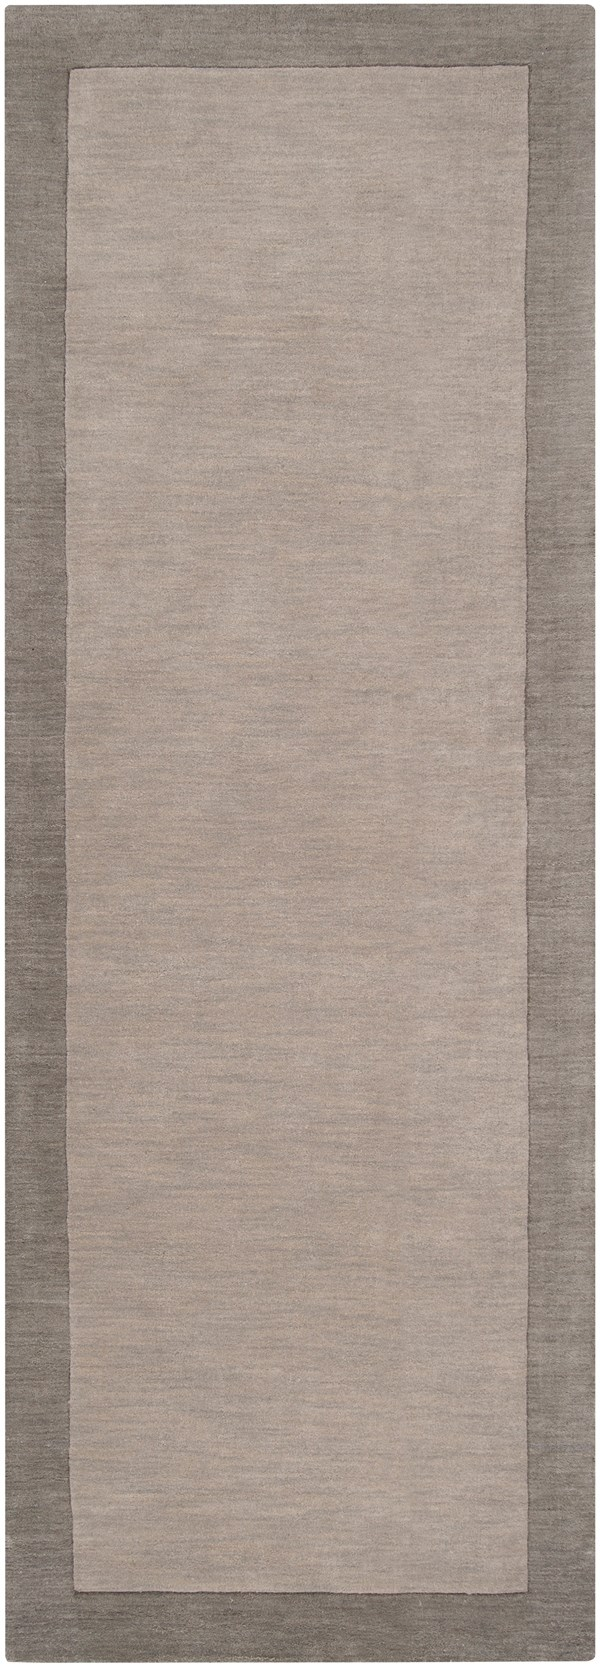 Pewter, Flint Gray Casual Area Rug